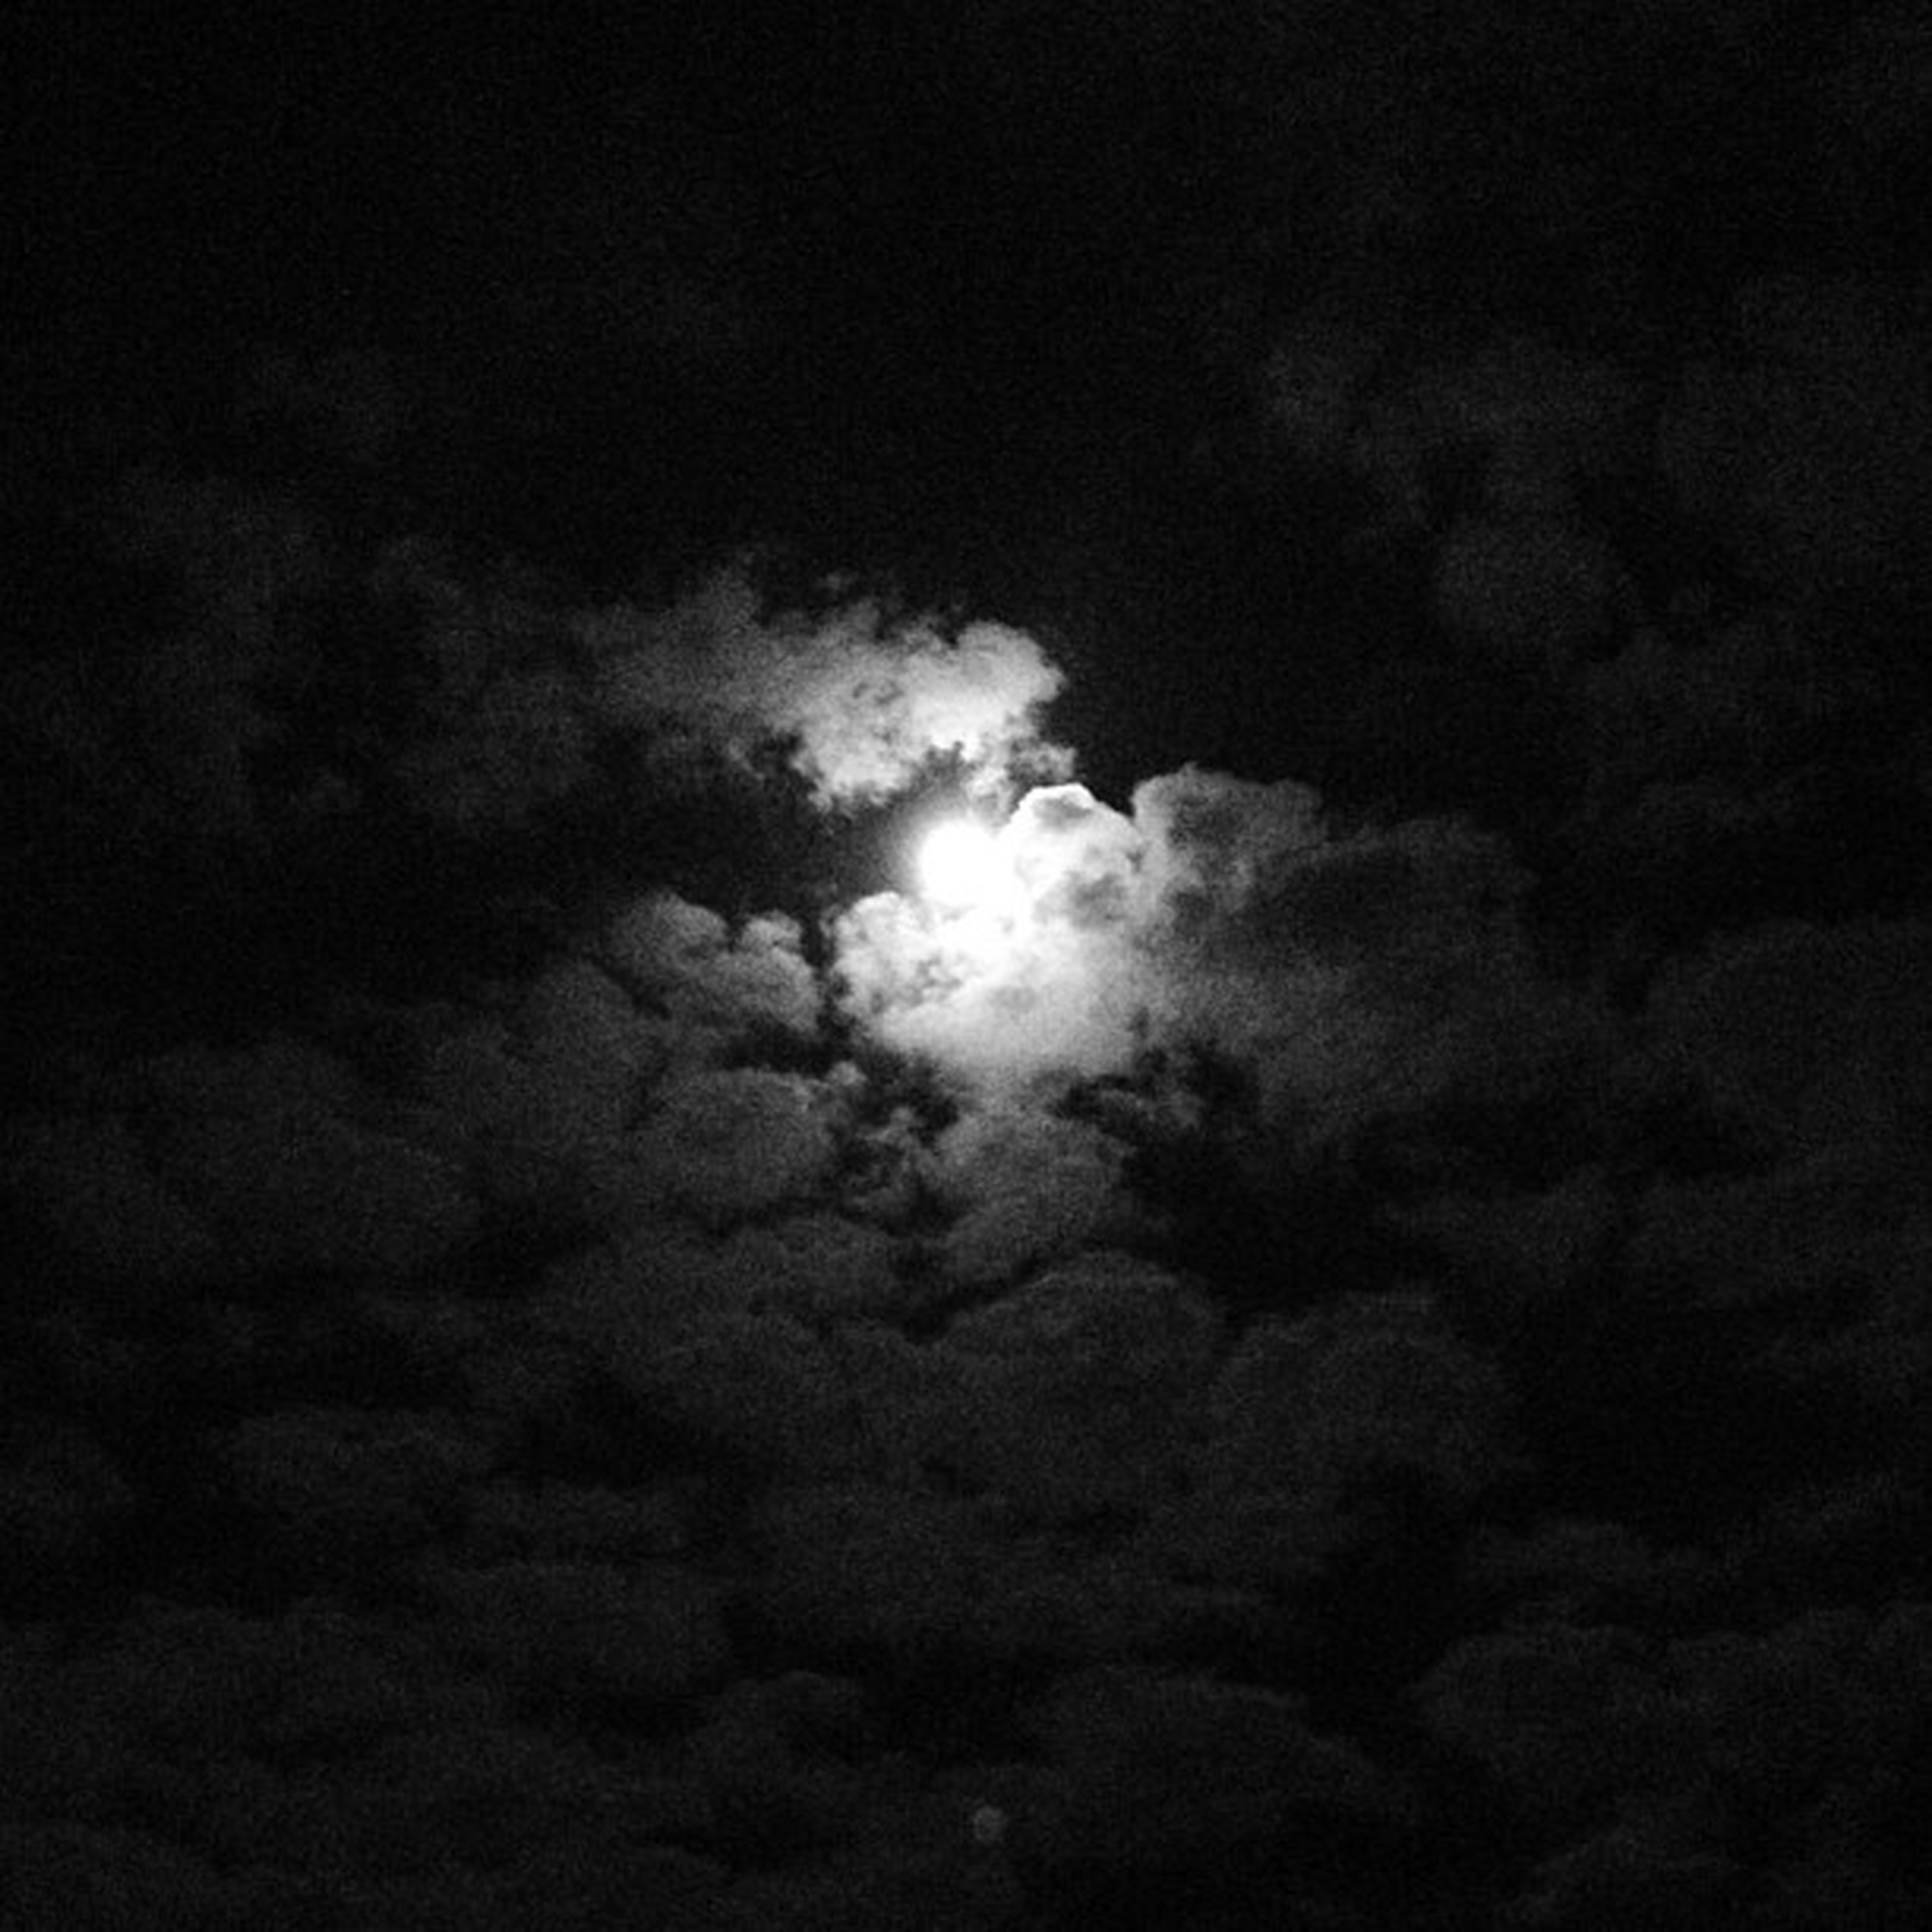 sky, low angle view, cloud - sky, beauty in nature, tranquility, scenics, cloudy, sky only, tranquil scene, nature, weather, cloudscape, backgrounds, overcast, idyllic, cloud, night, majestic, dark, outdoors